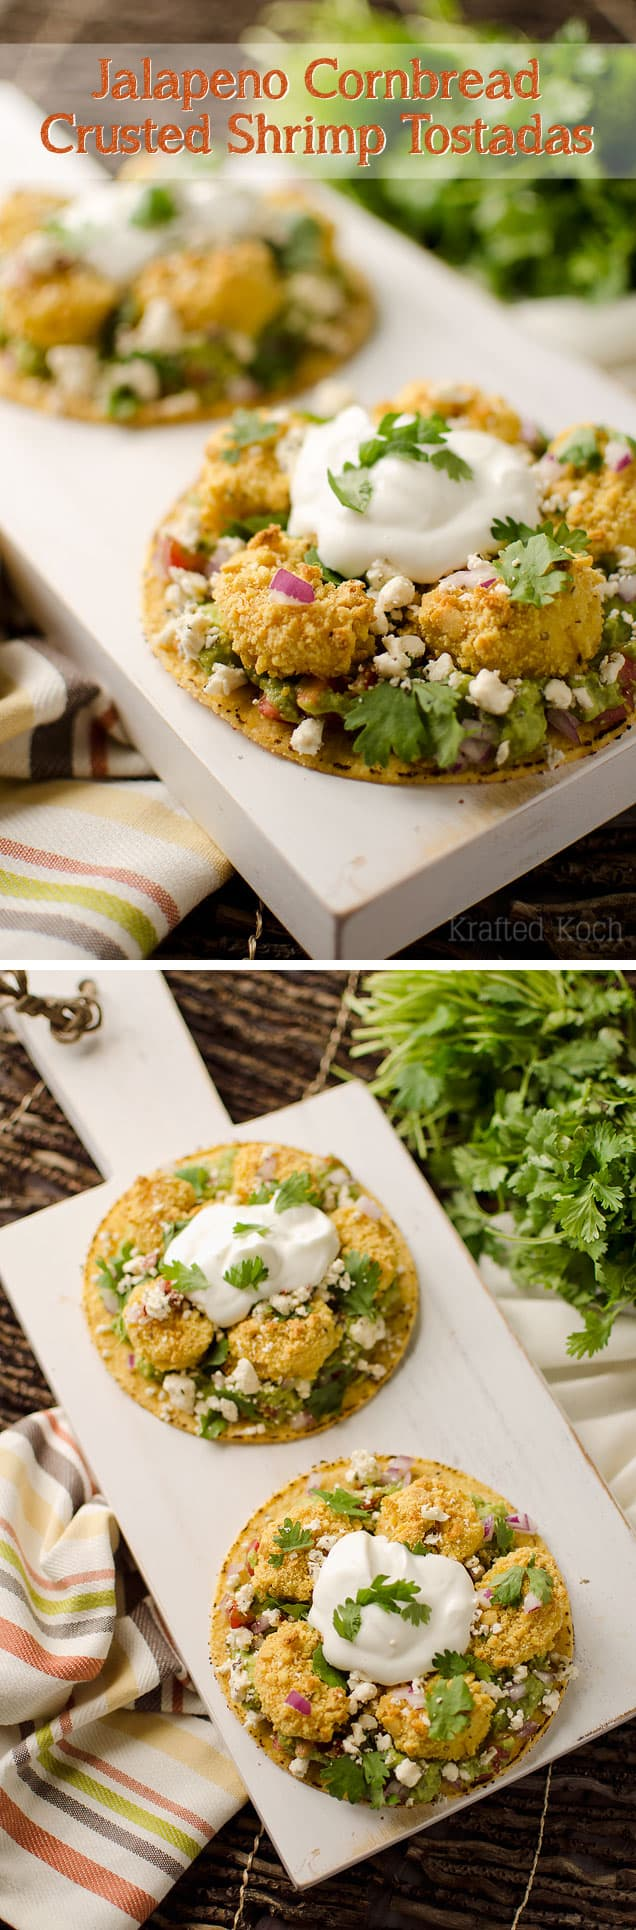 Jalapeno Cornbread Crusted Shrimp Tostadas - Krafted Koch